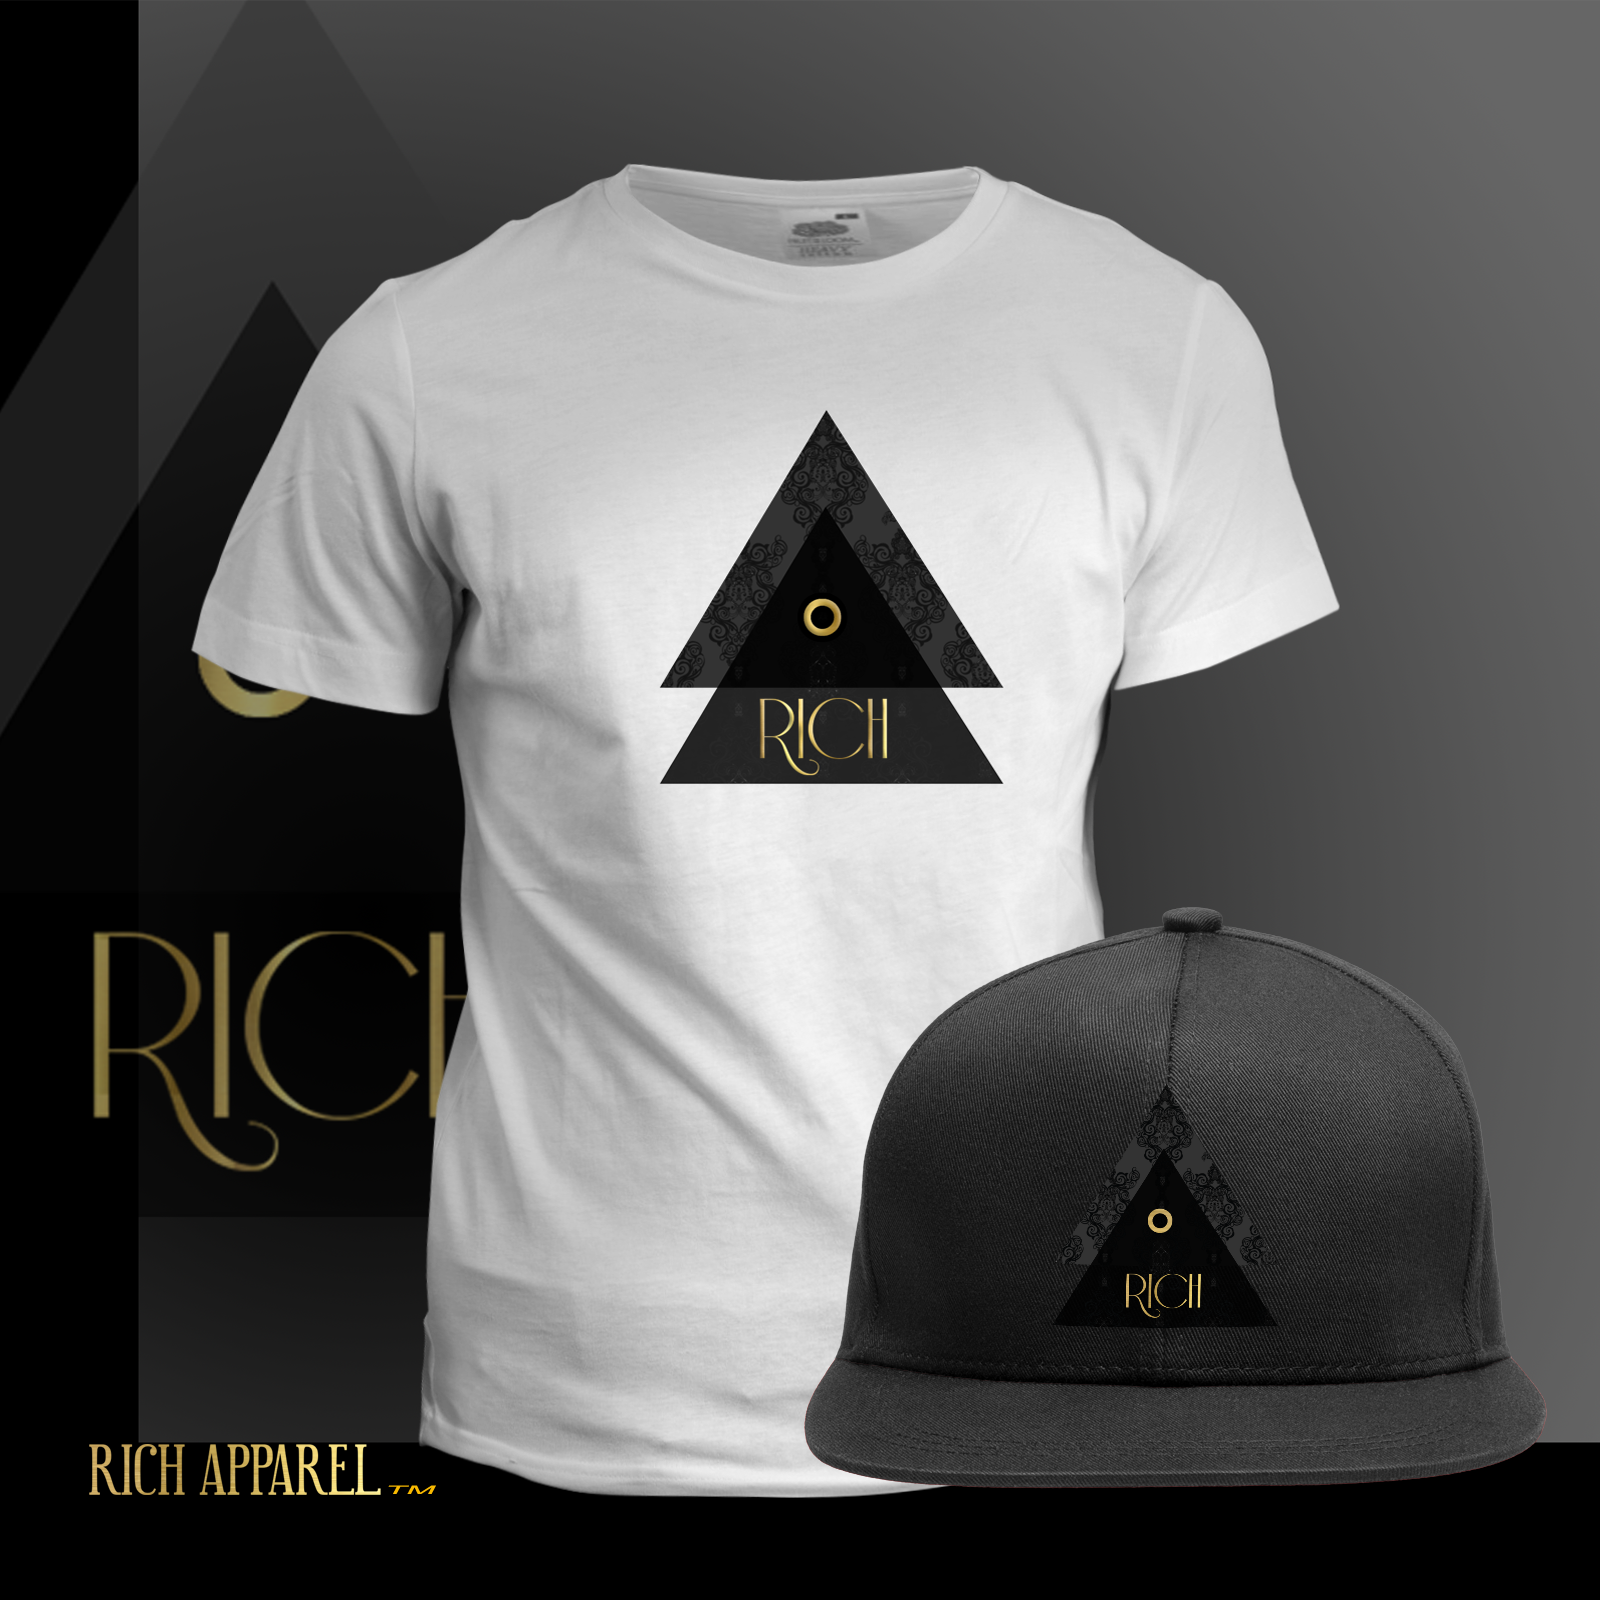 RICH EL WHITE T  BLACK HAT comboGoldSolid logo